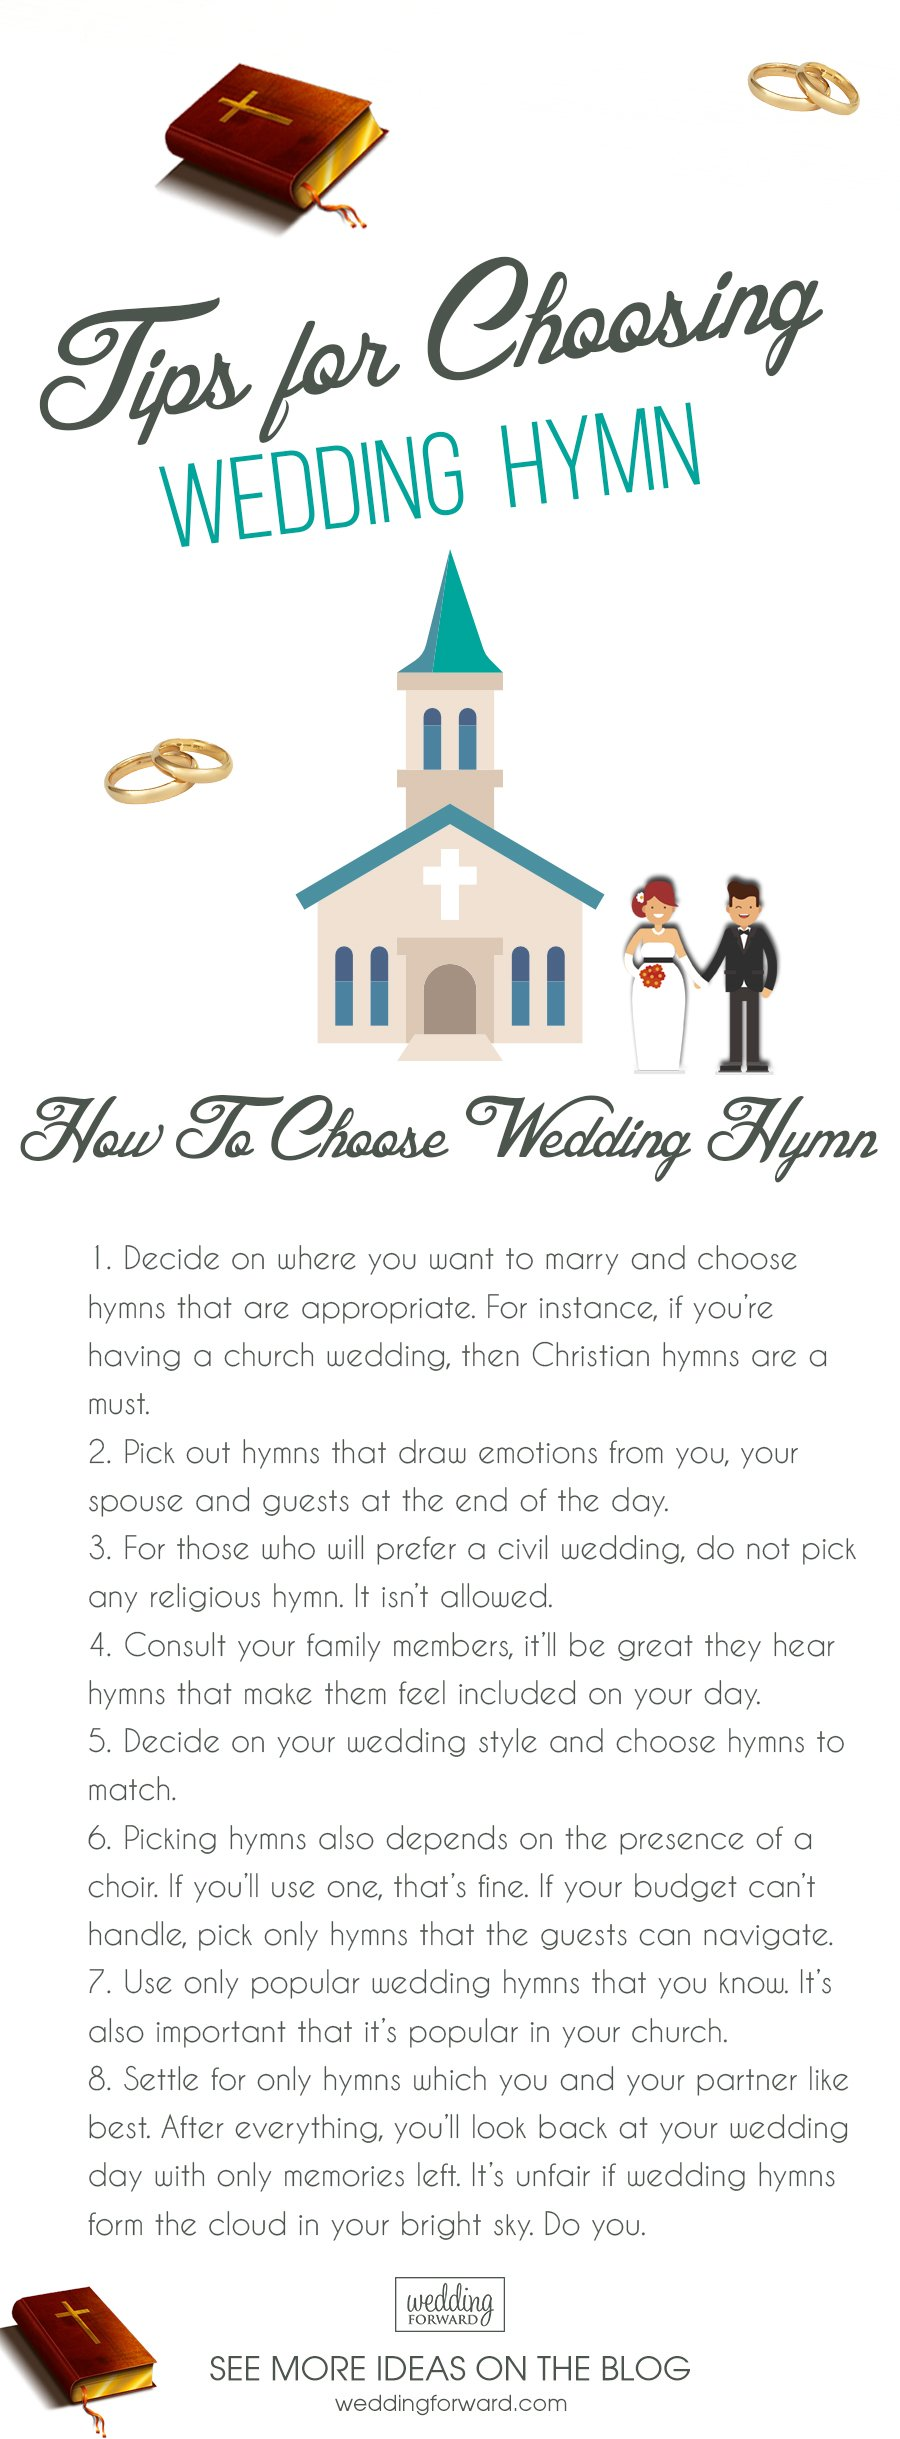 wedding hymns tips for choosing wedding hymn